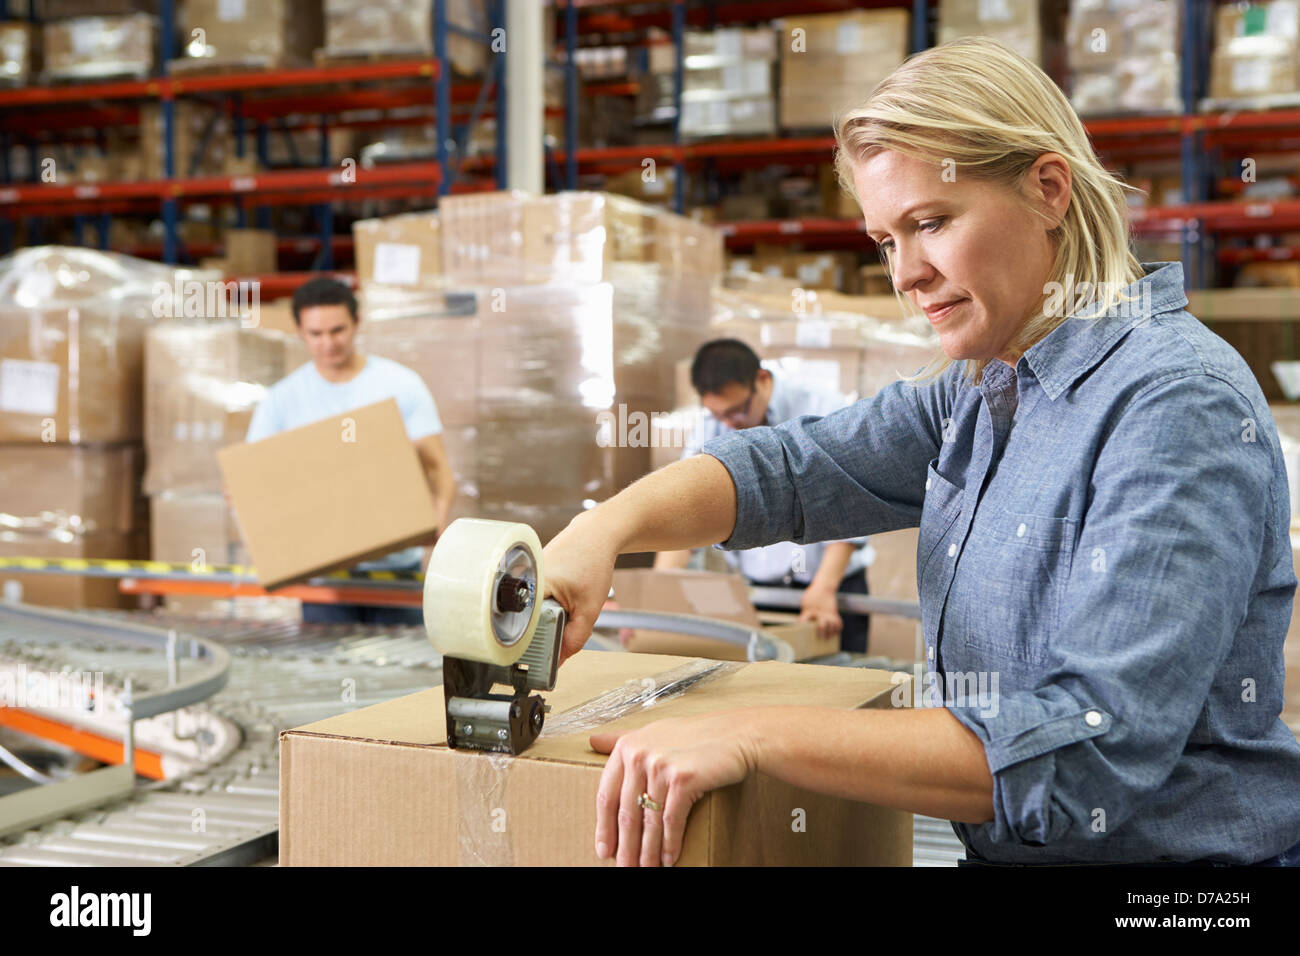 Workers In Distribution Warehouse - Stock Image